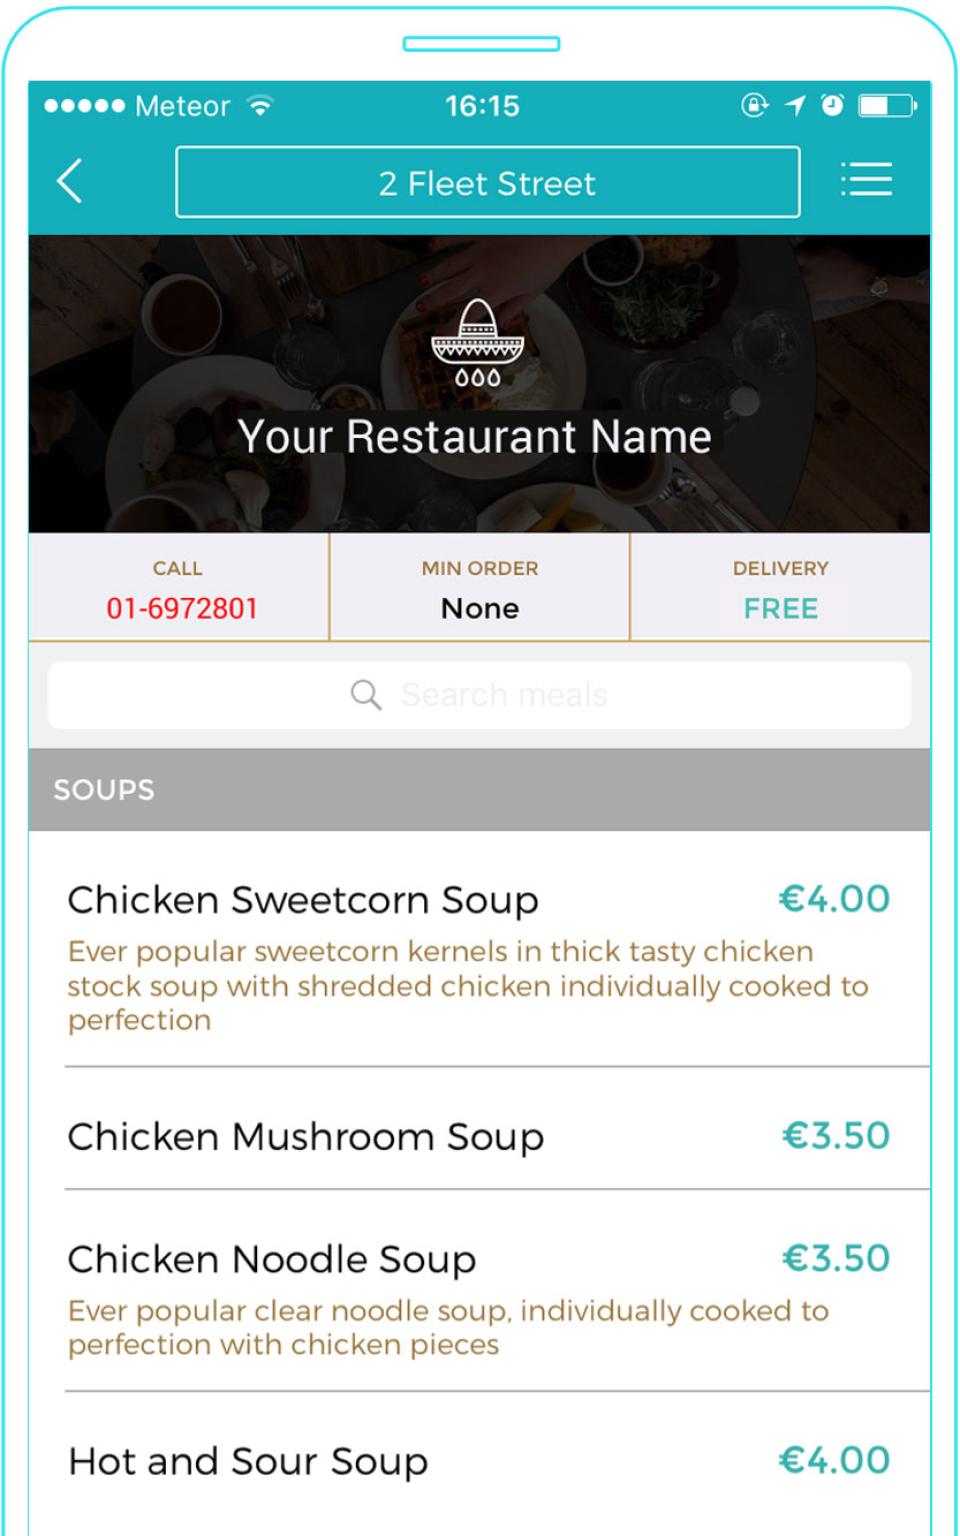 Customers can search dishes and place orders